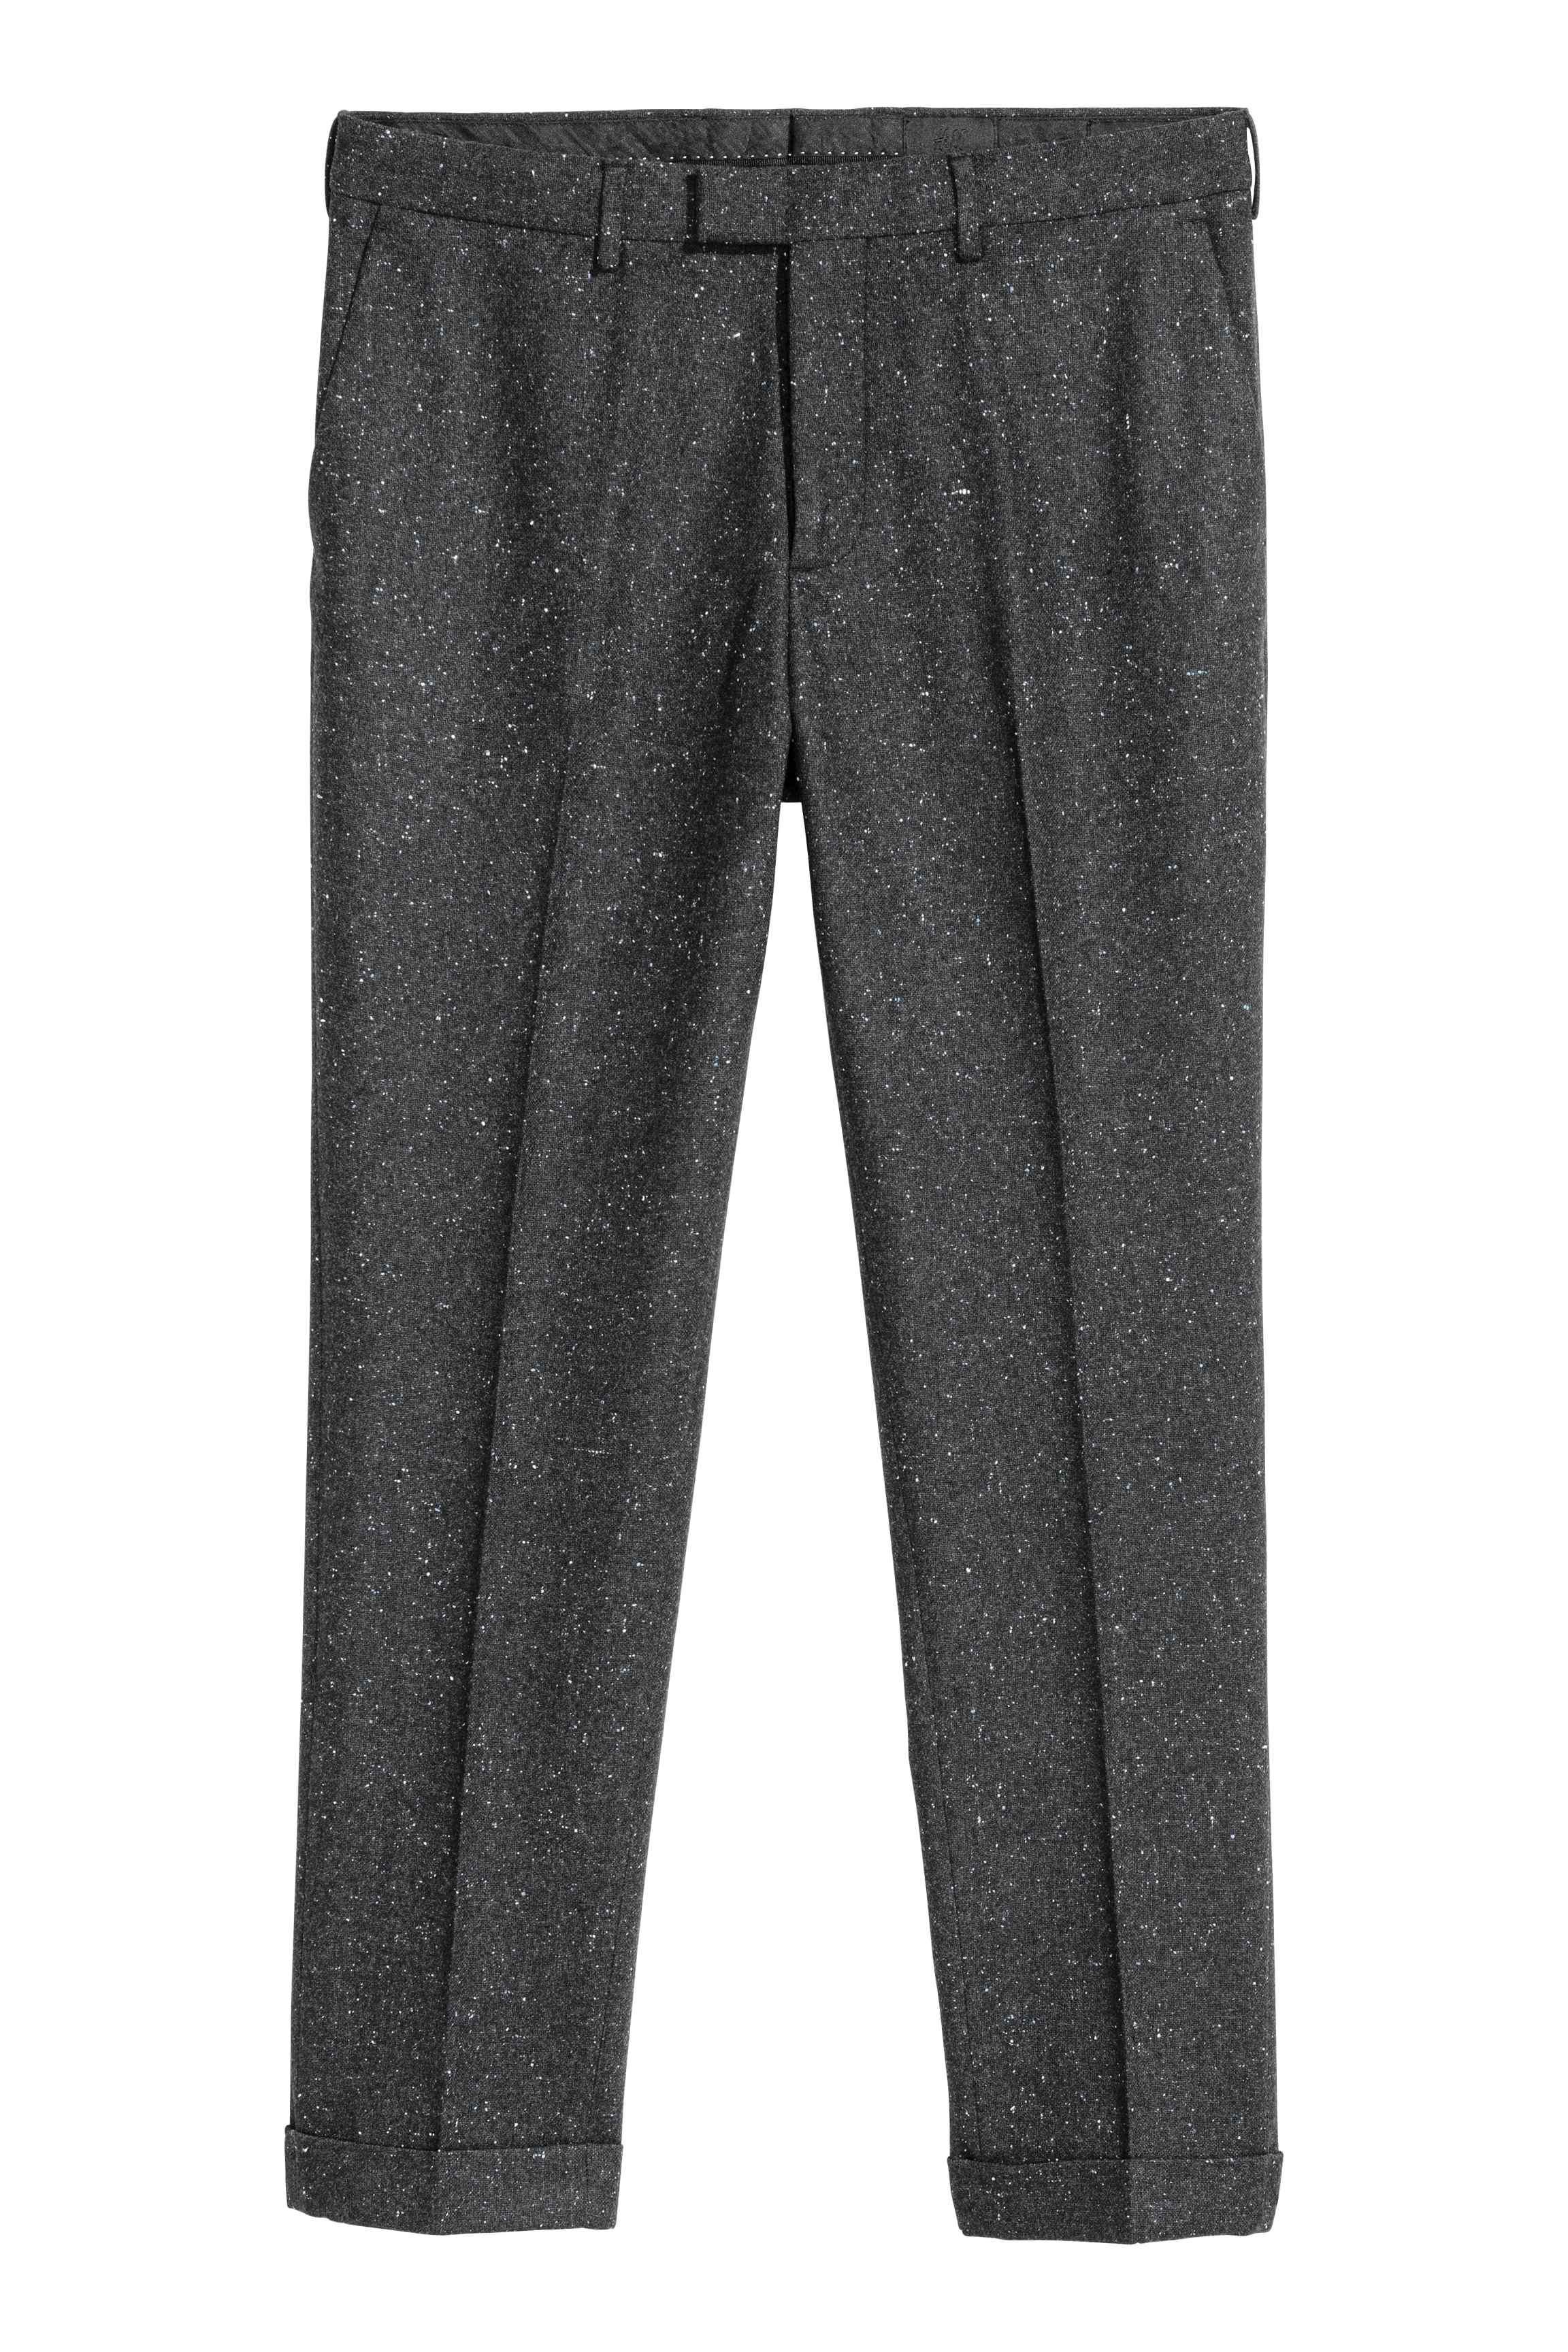 H&M Wool Nepped Suit Trousers Slim Fit in Grey for Men